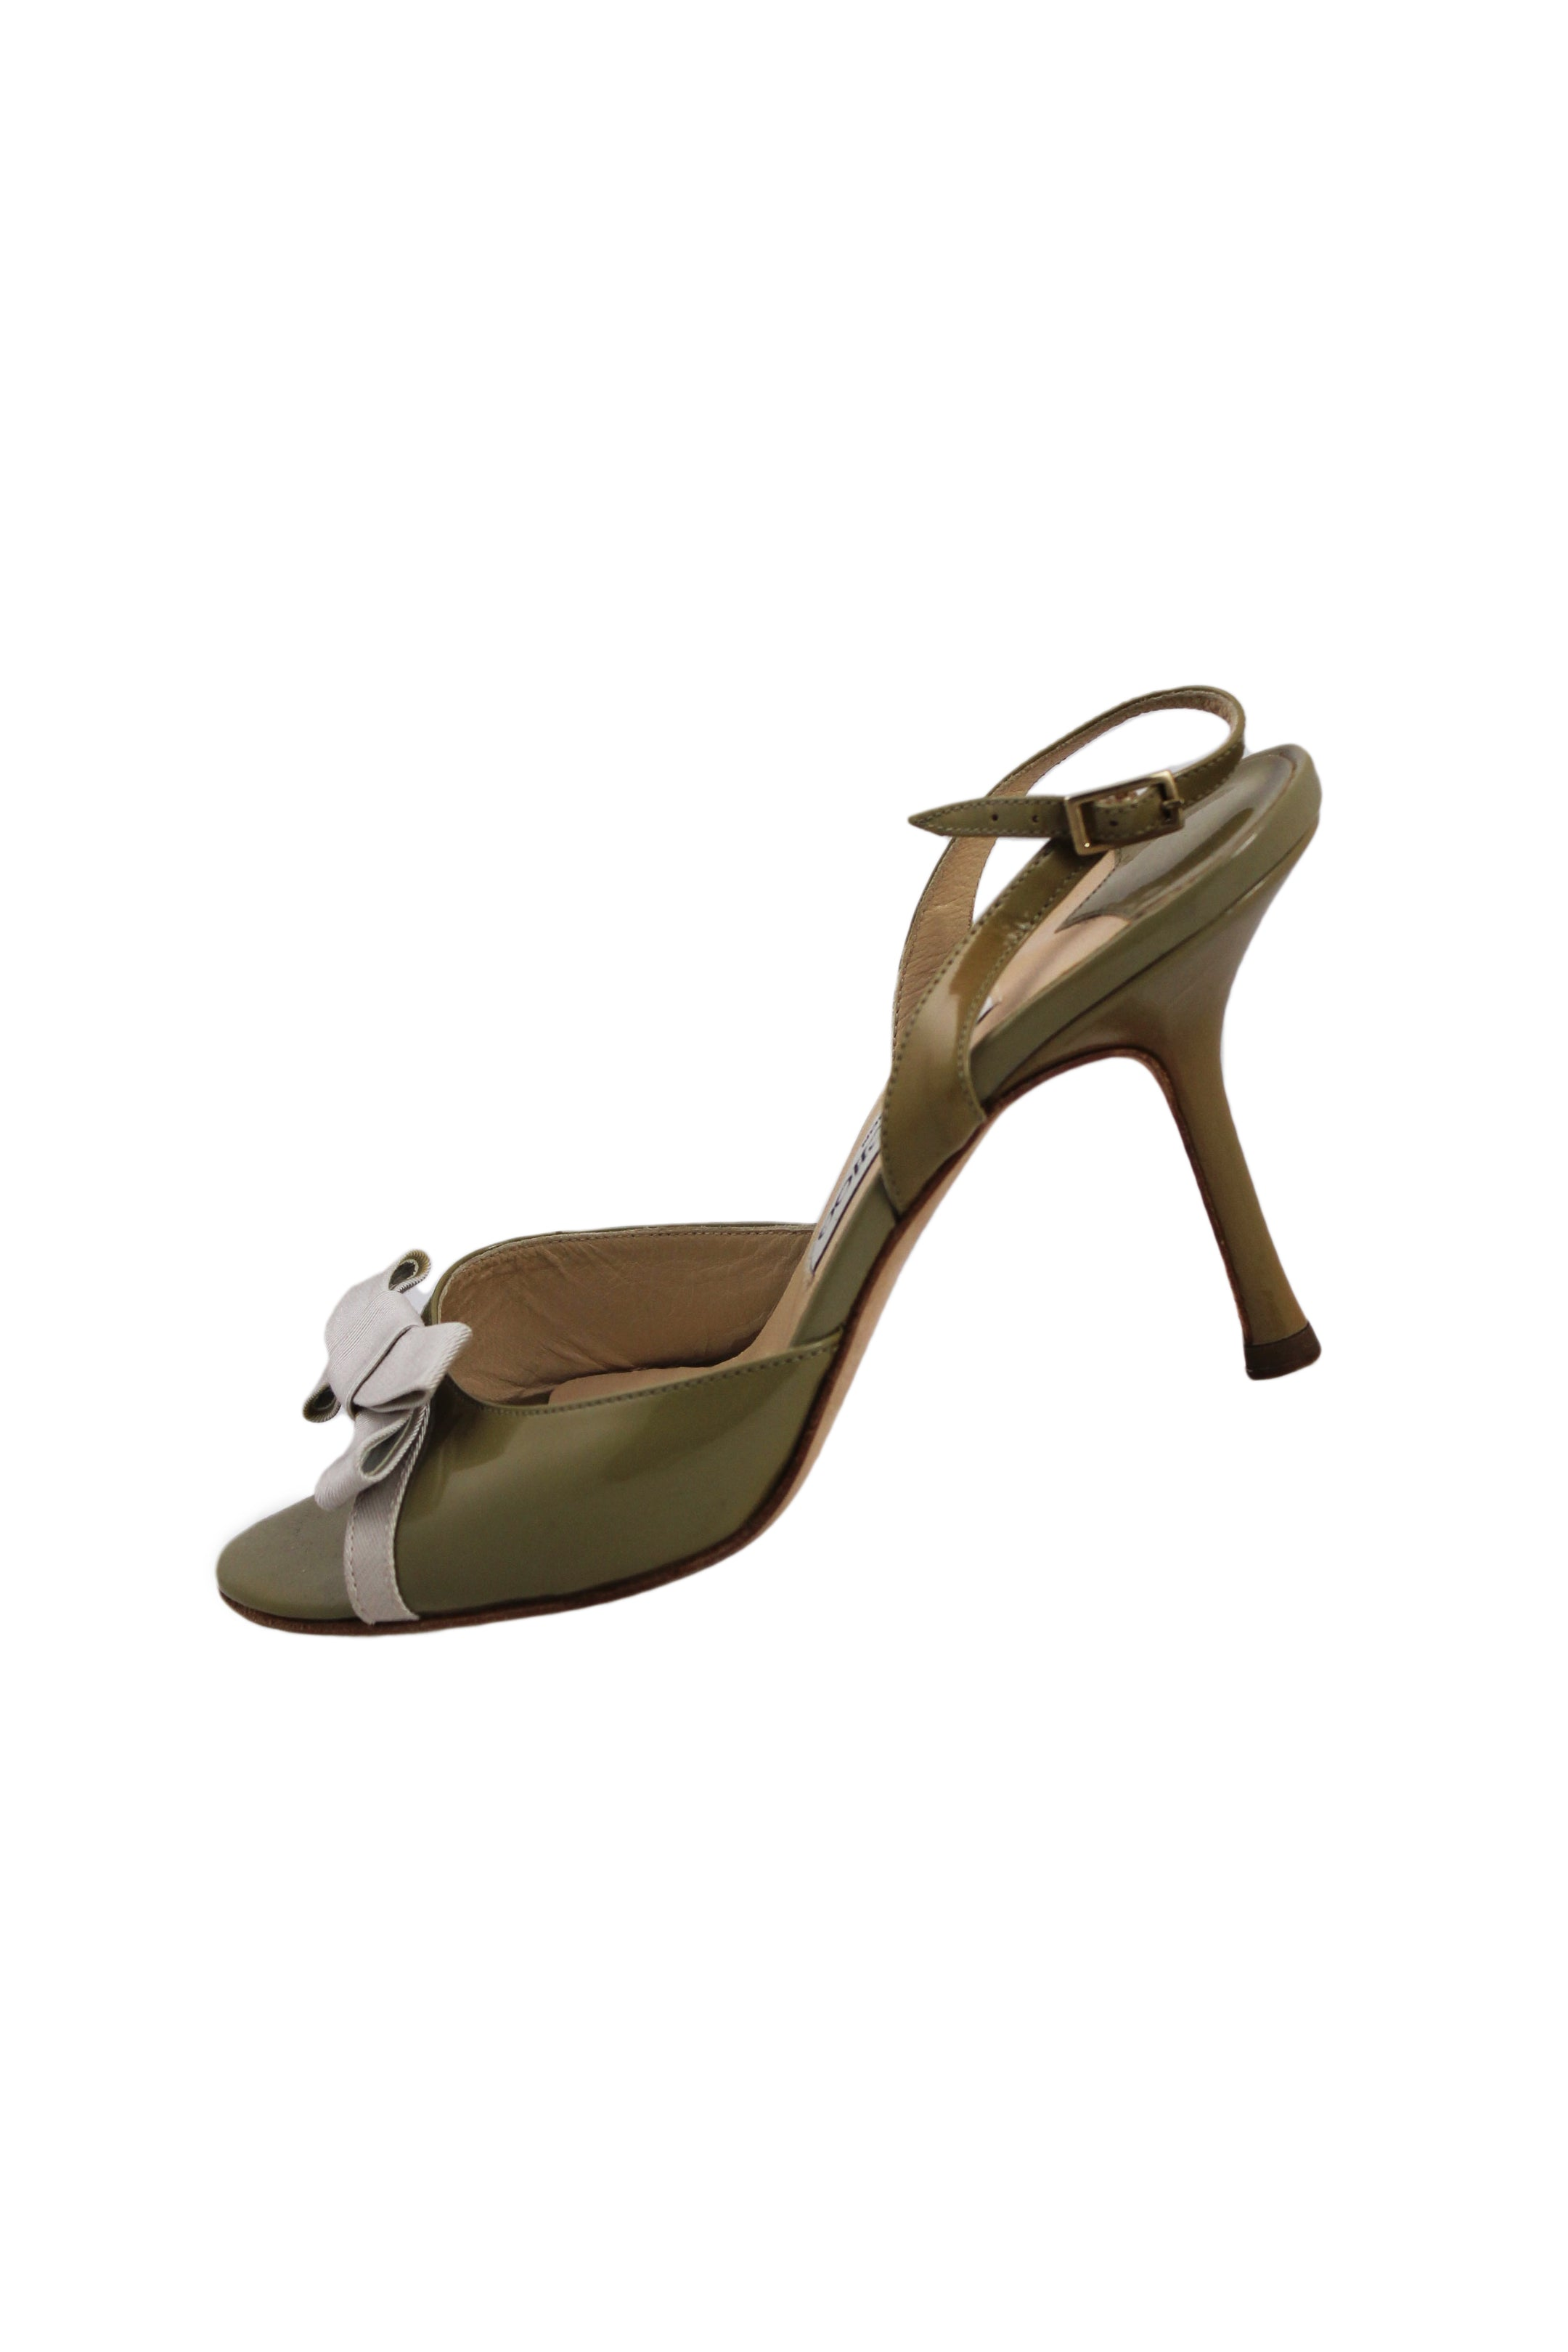 description: jimmy choo green heels. featuring an accent bow detail on toes.